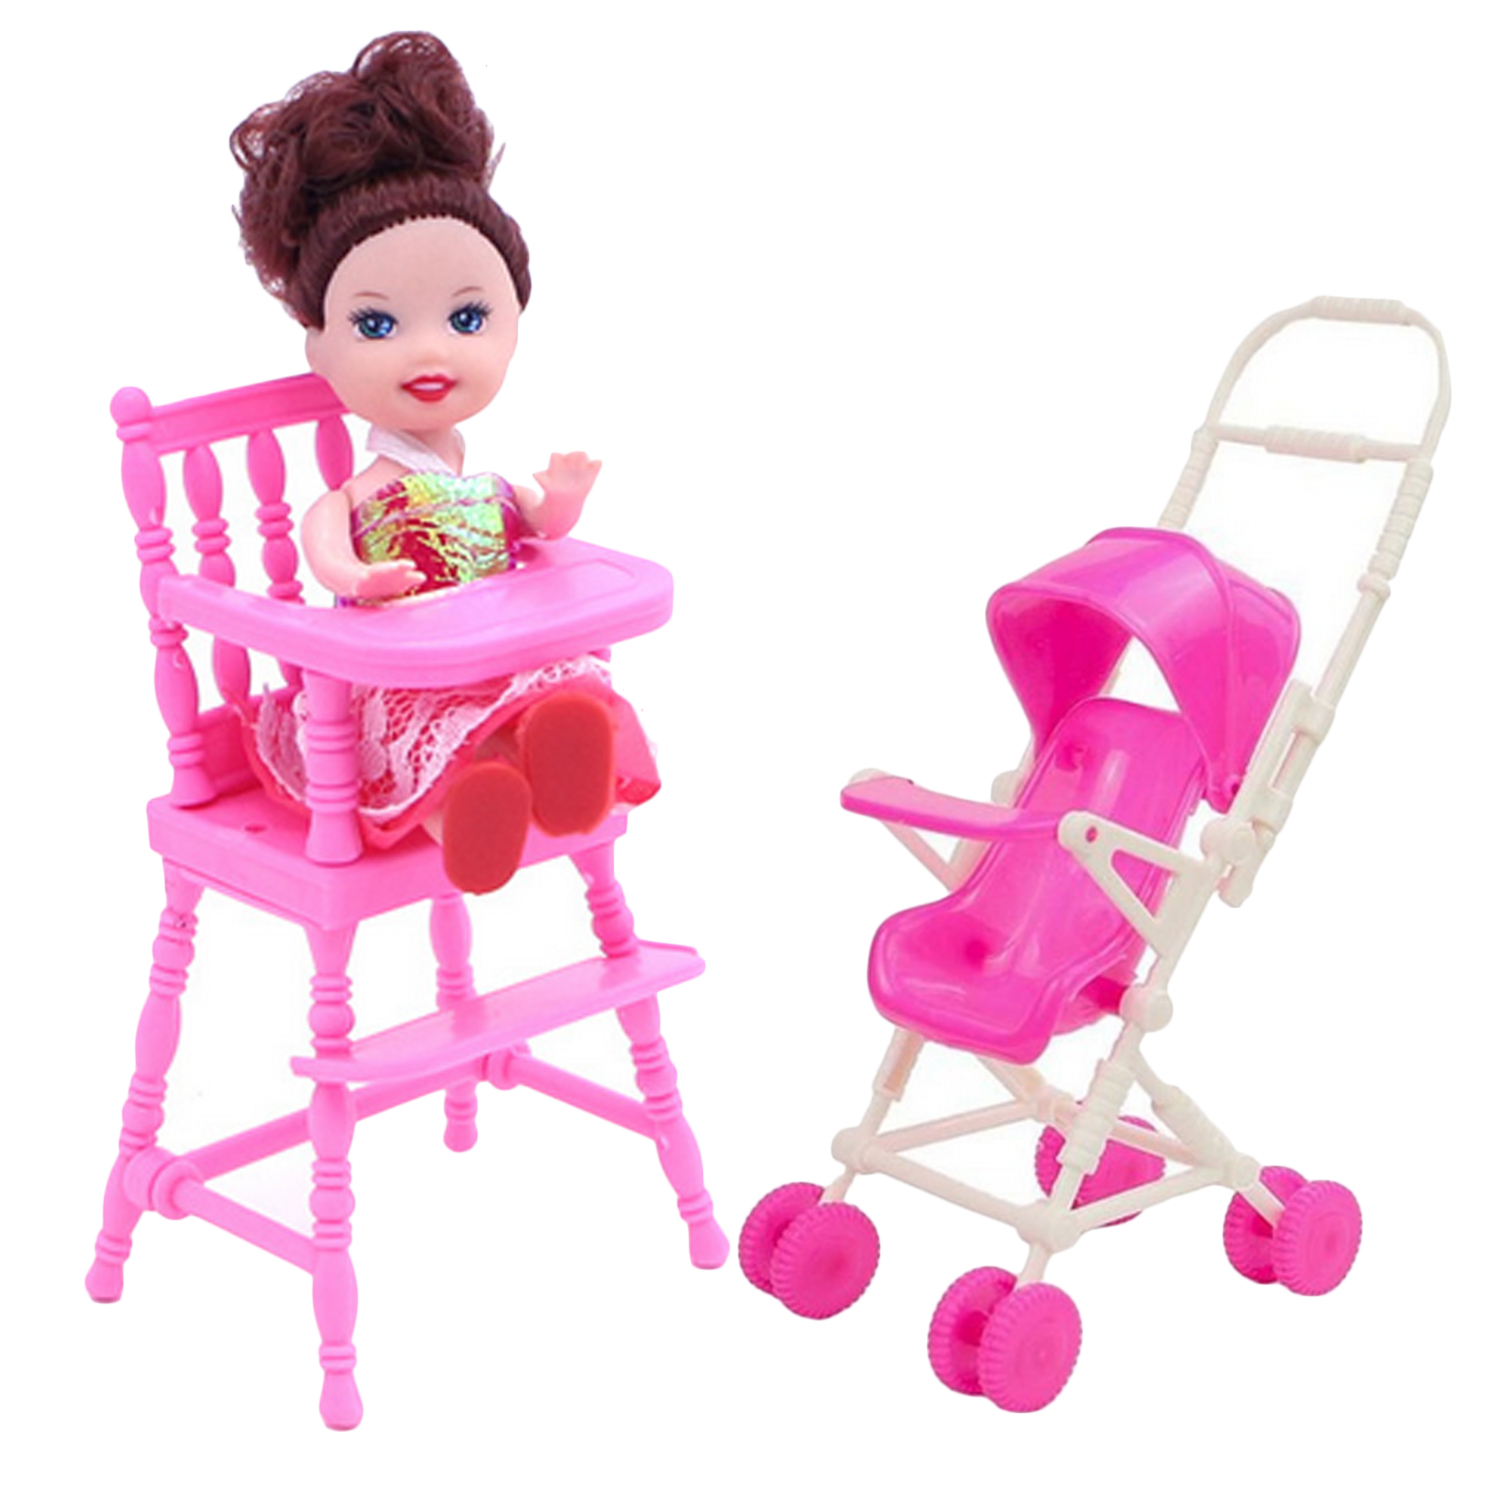 2Pcs=1pcs Baby Pink Mini Nursery High Chair With 1pcs Doll Stroller Carriage Doll House Furniture Accessories For Barbie Toy